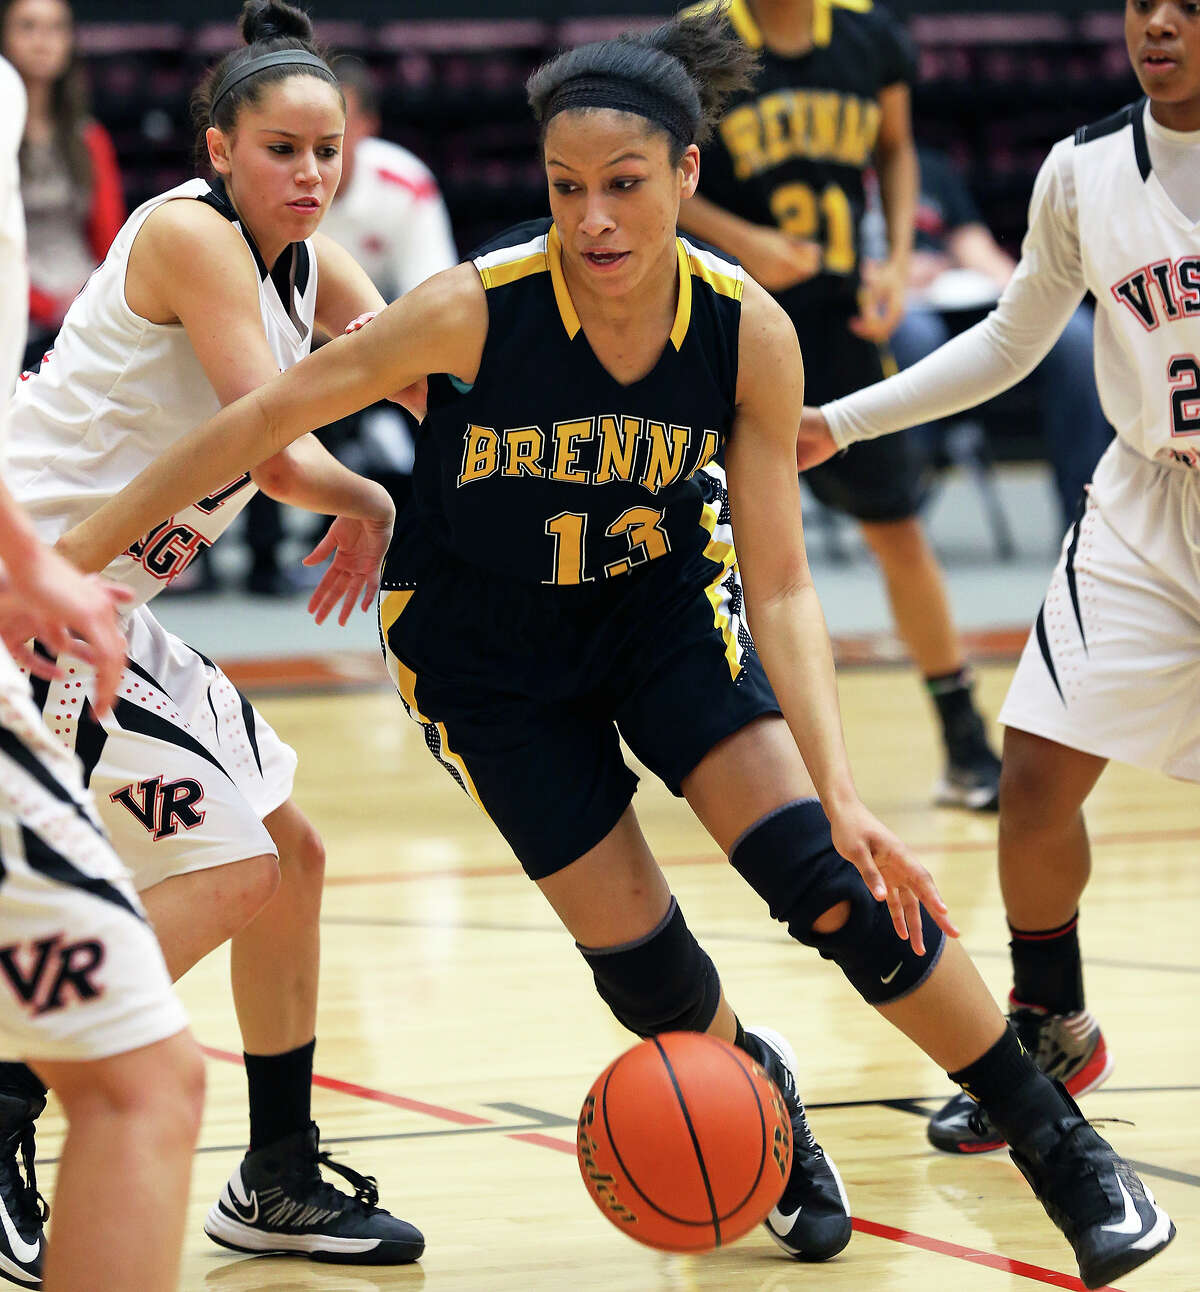 Kiara Etheridge rolls in for a shot for the Bears as Brennan plays Vista Ridge in the girls Region IV-4A championship basketball game at Littleton Gym on February 23, 2013.